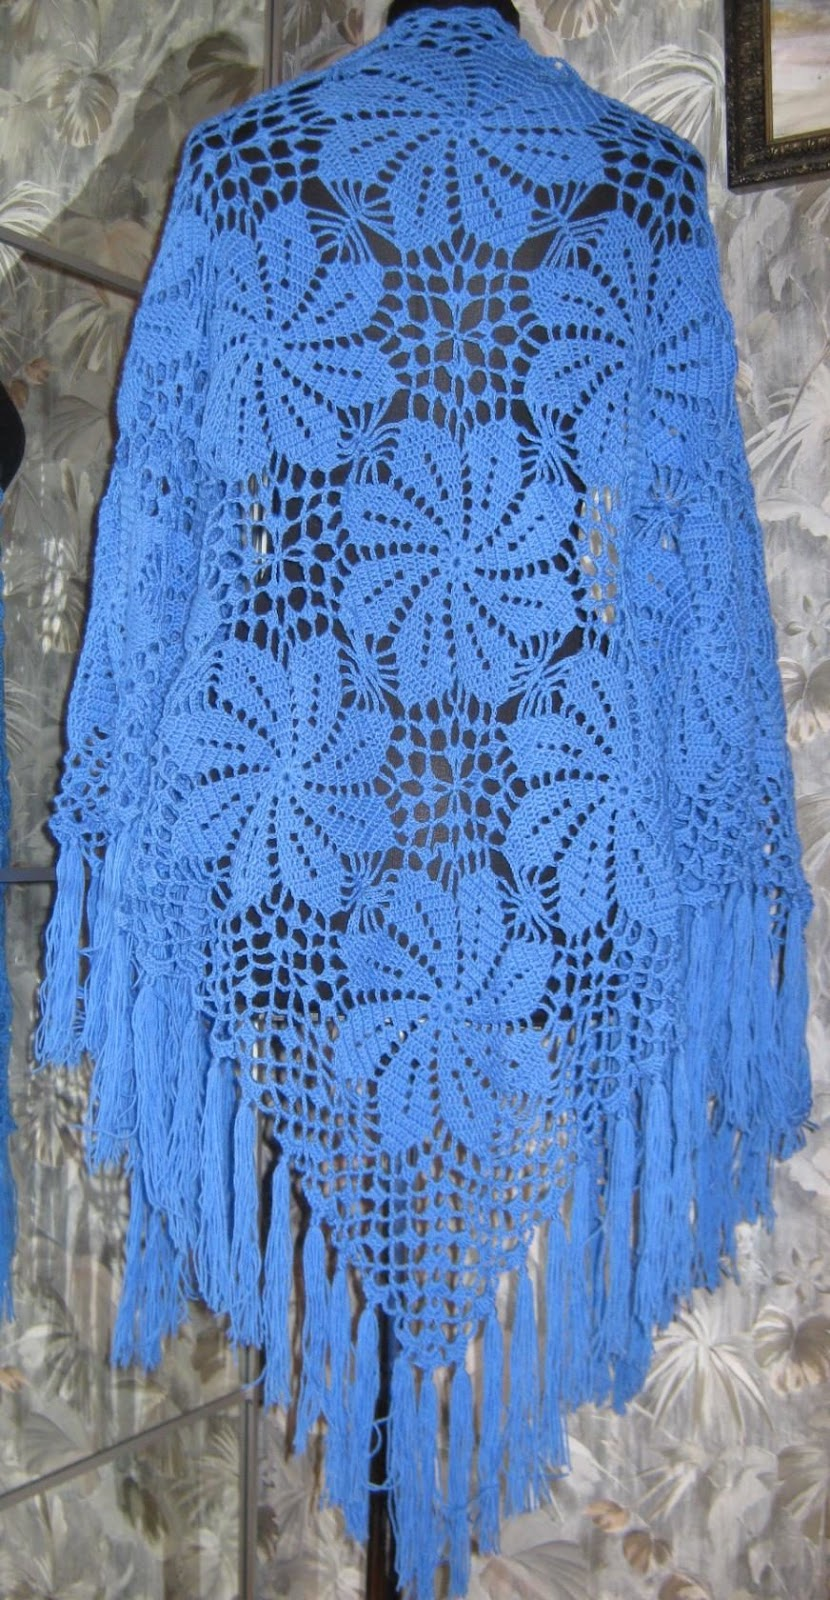 how to crochet a shawl - Pattern Free.